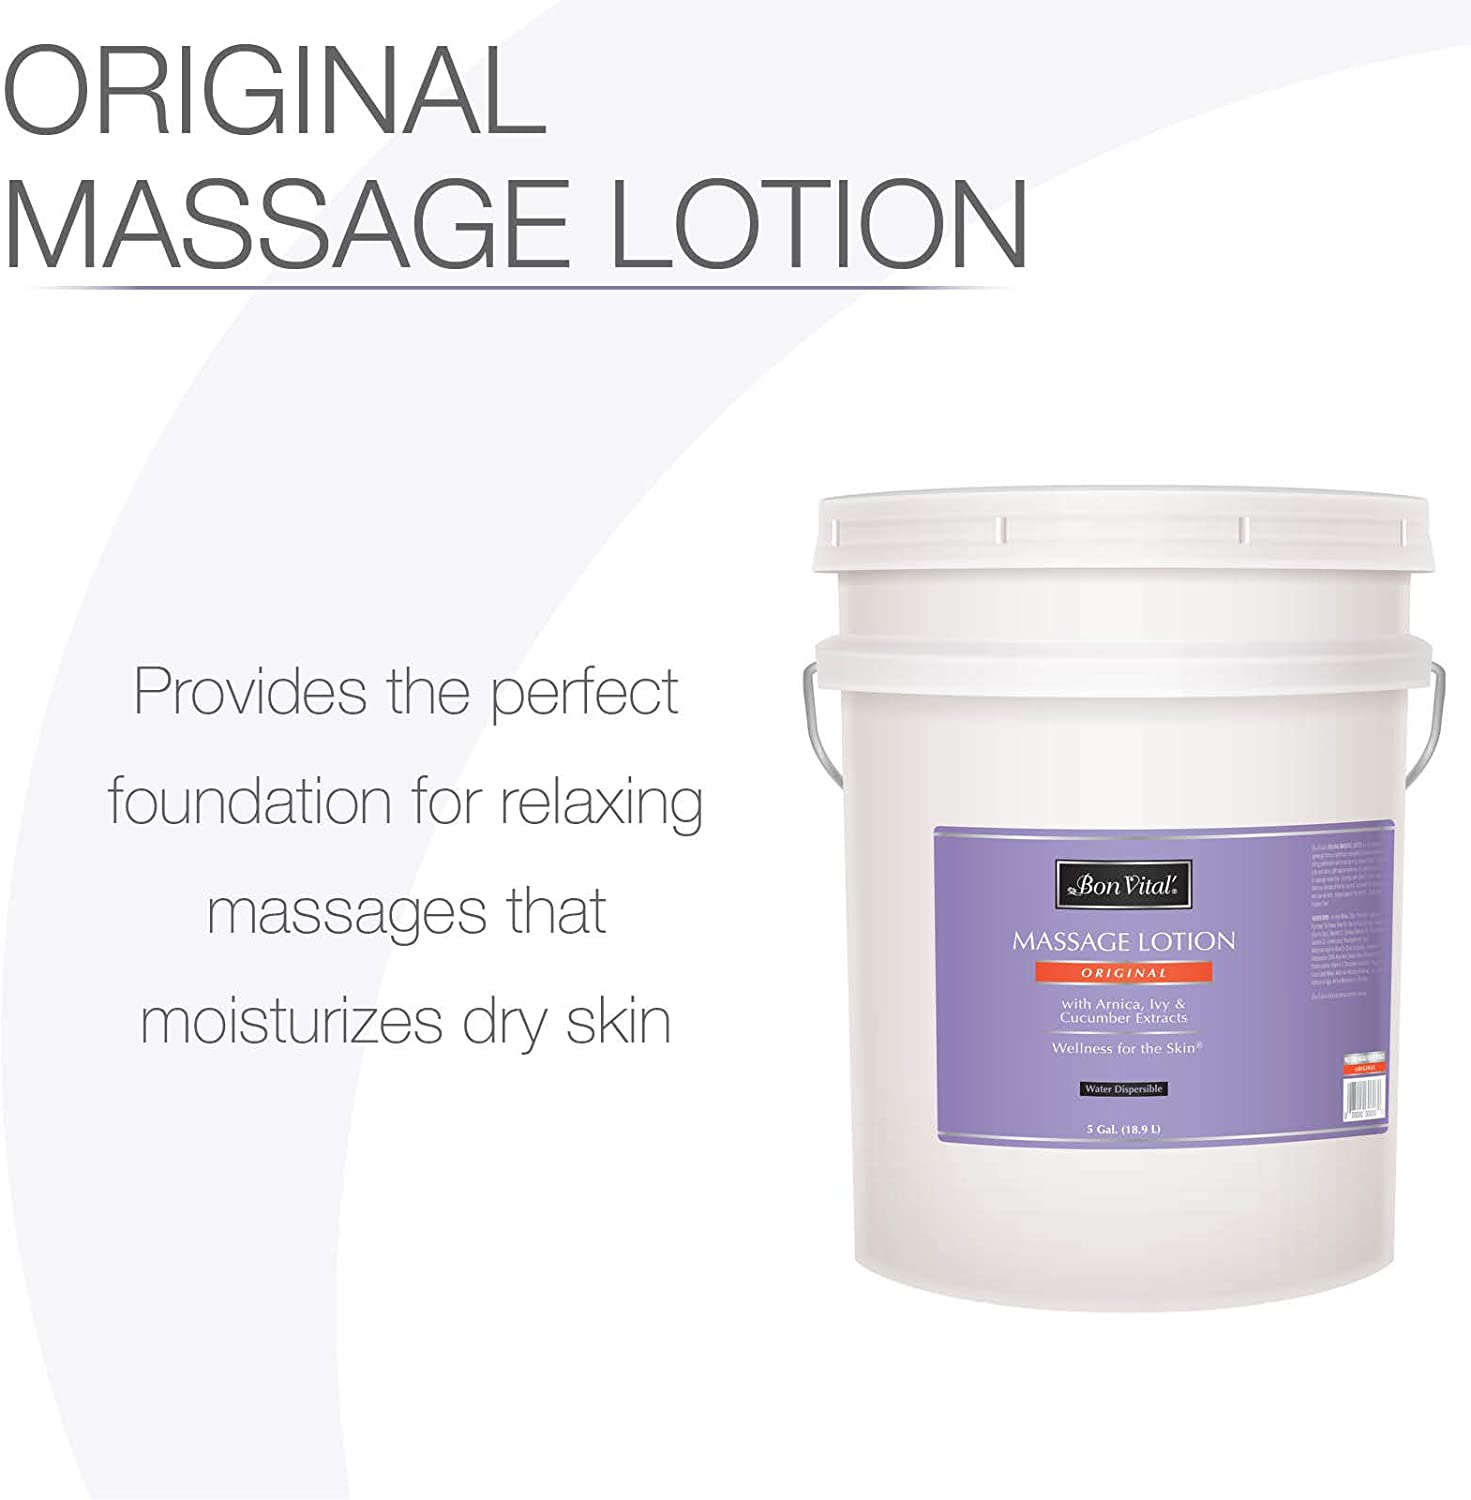 Bon Vital' Original Massage Lotion for a Versatile Massage Foundation to Relax Sore Muscles & Repair Dry Skin, Lightweight, Non-Greasy Formula to Moisturize and Repair Dry Skin, 5 Gallon Pail: Health & Personal Care